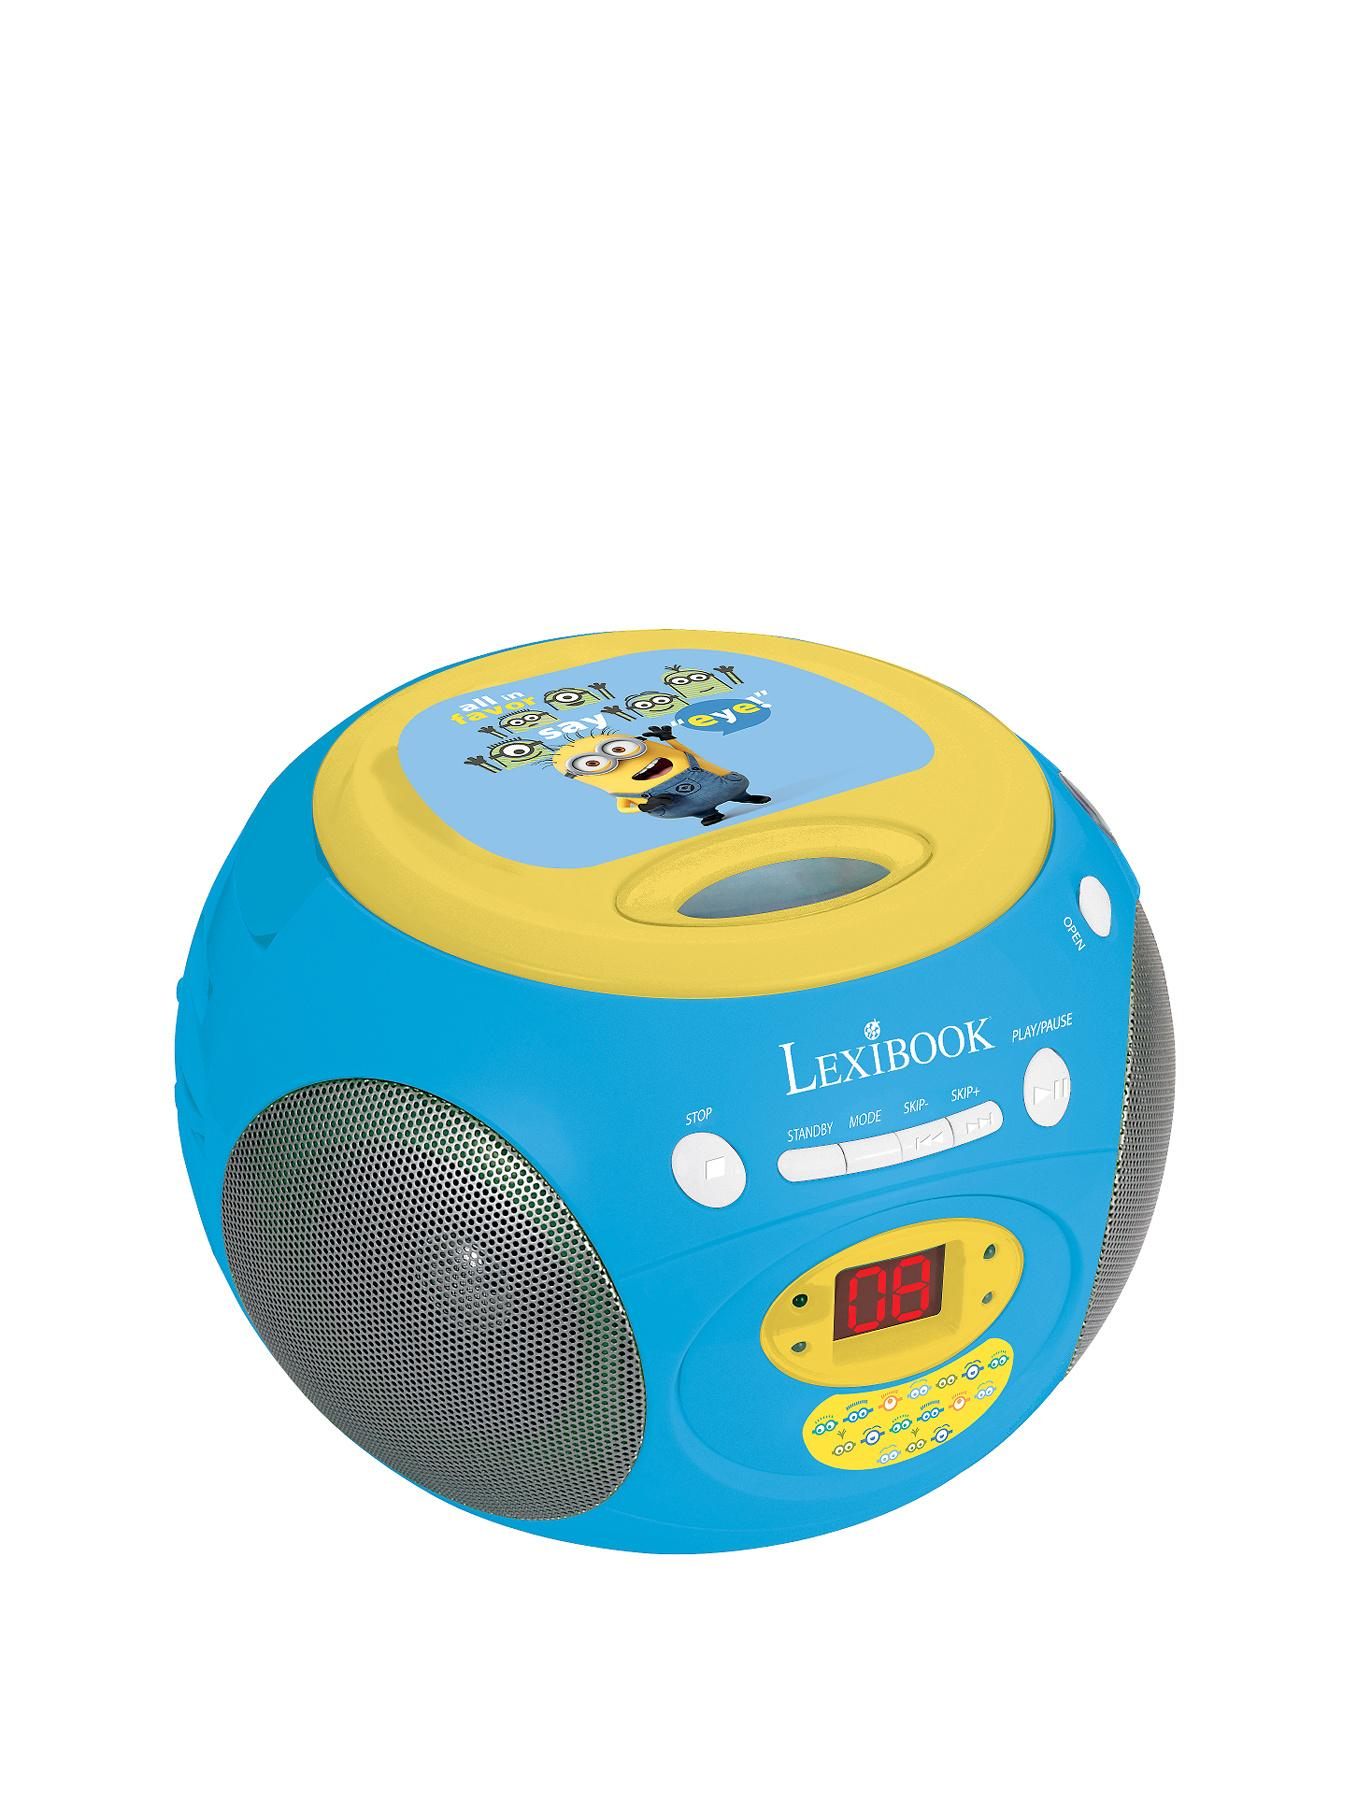 Despicable Me Lexibook Radio CD Player